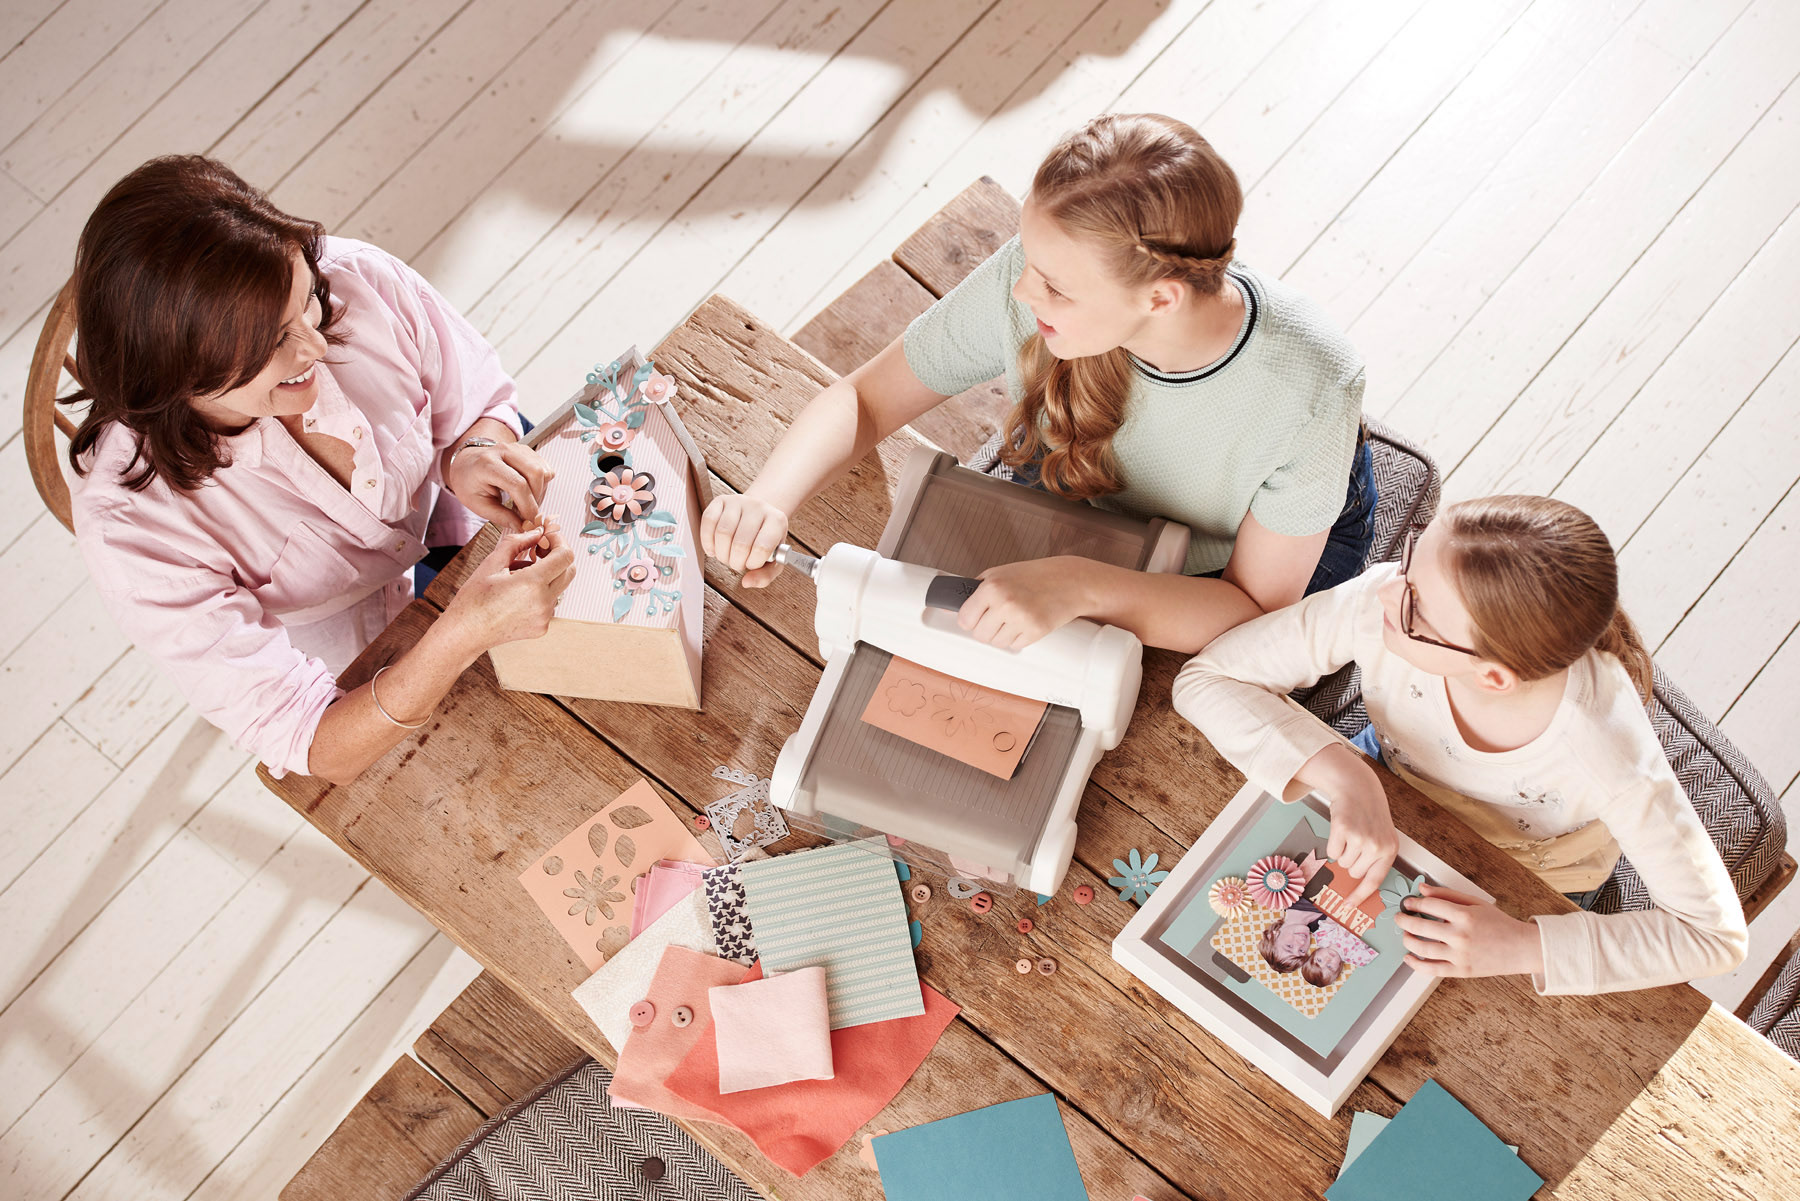 A mum and her two daughters crafting at a table, shot from above